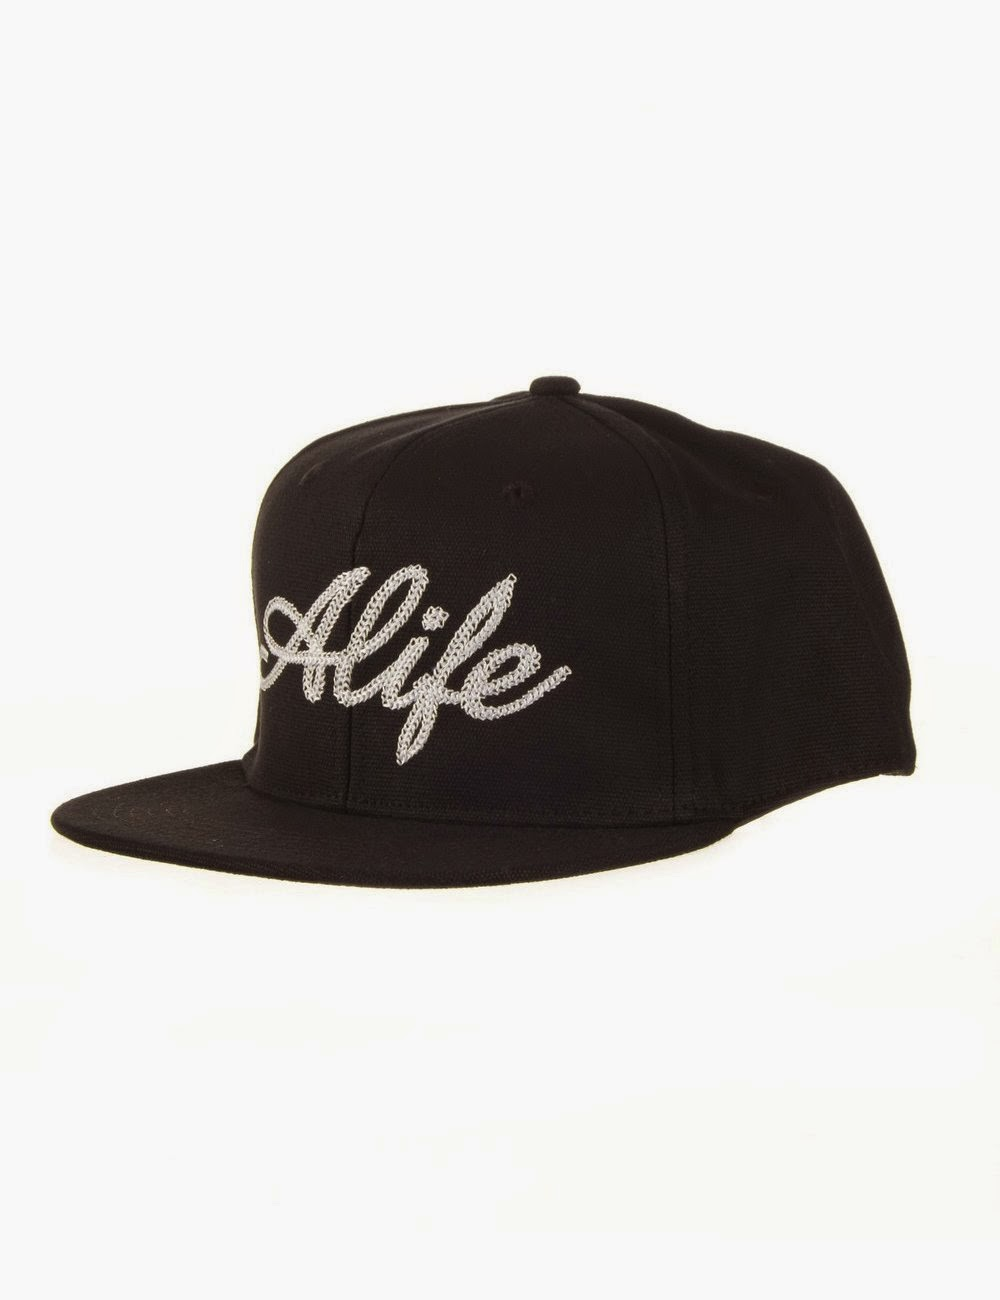 f53678ccc83 Again keeping it classic we are stocking a baseball style snapback with  ALIFE s iconic branding.